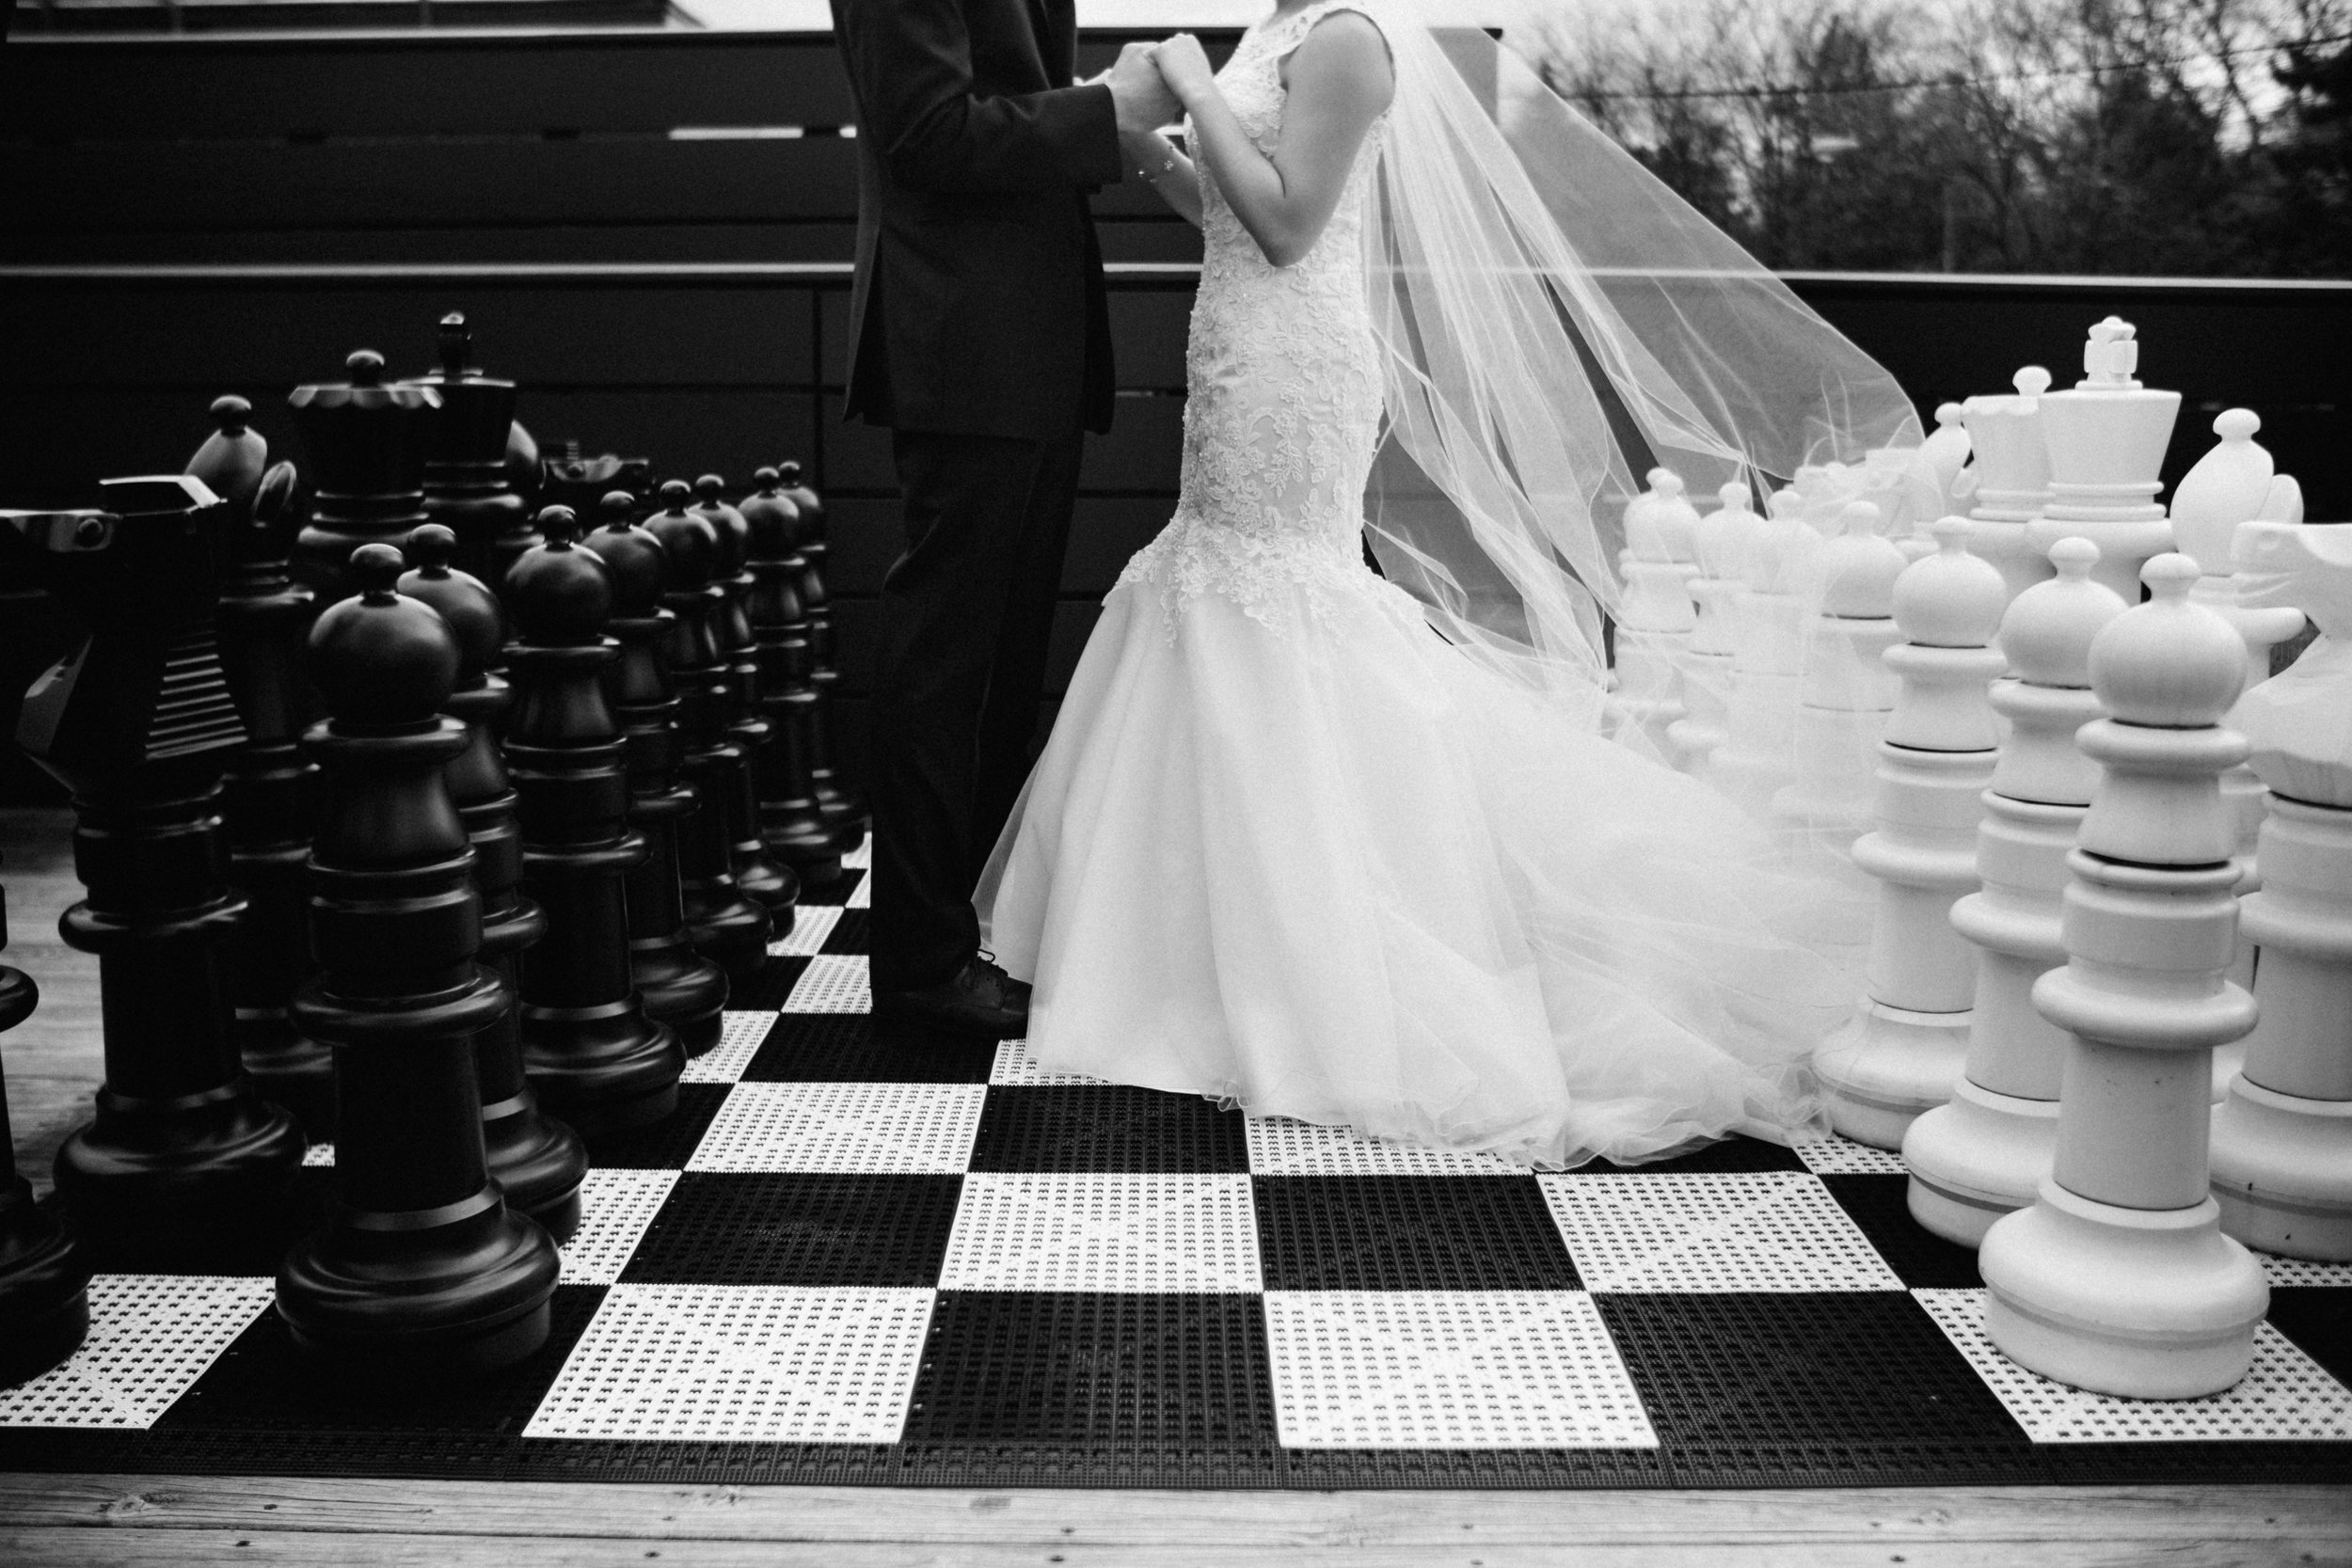 ShadowShinePictures-VeronicaToddKorthals-Ann-Arbor-Wedding-Photography-23.jpg